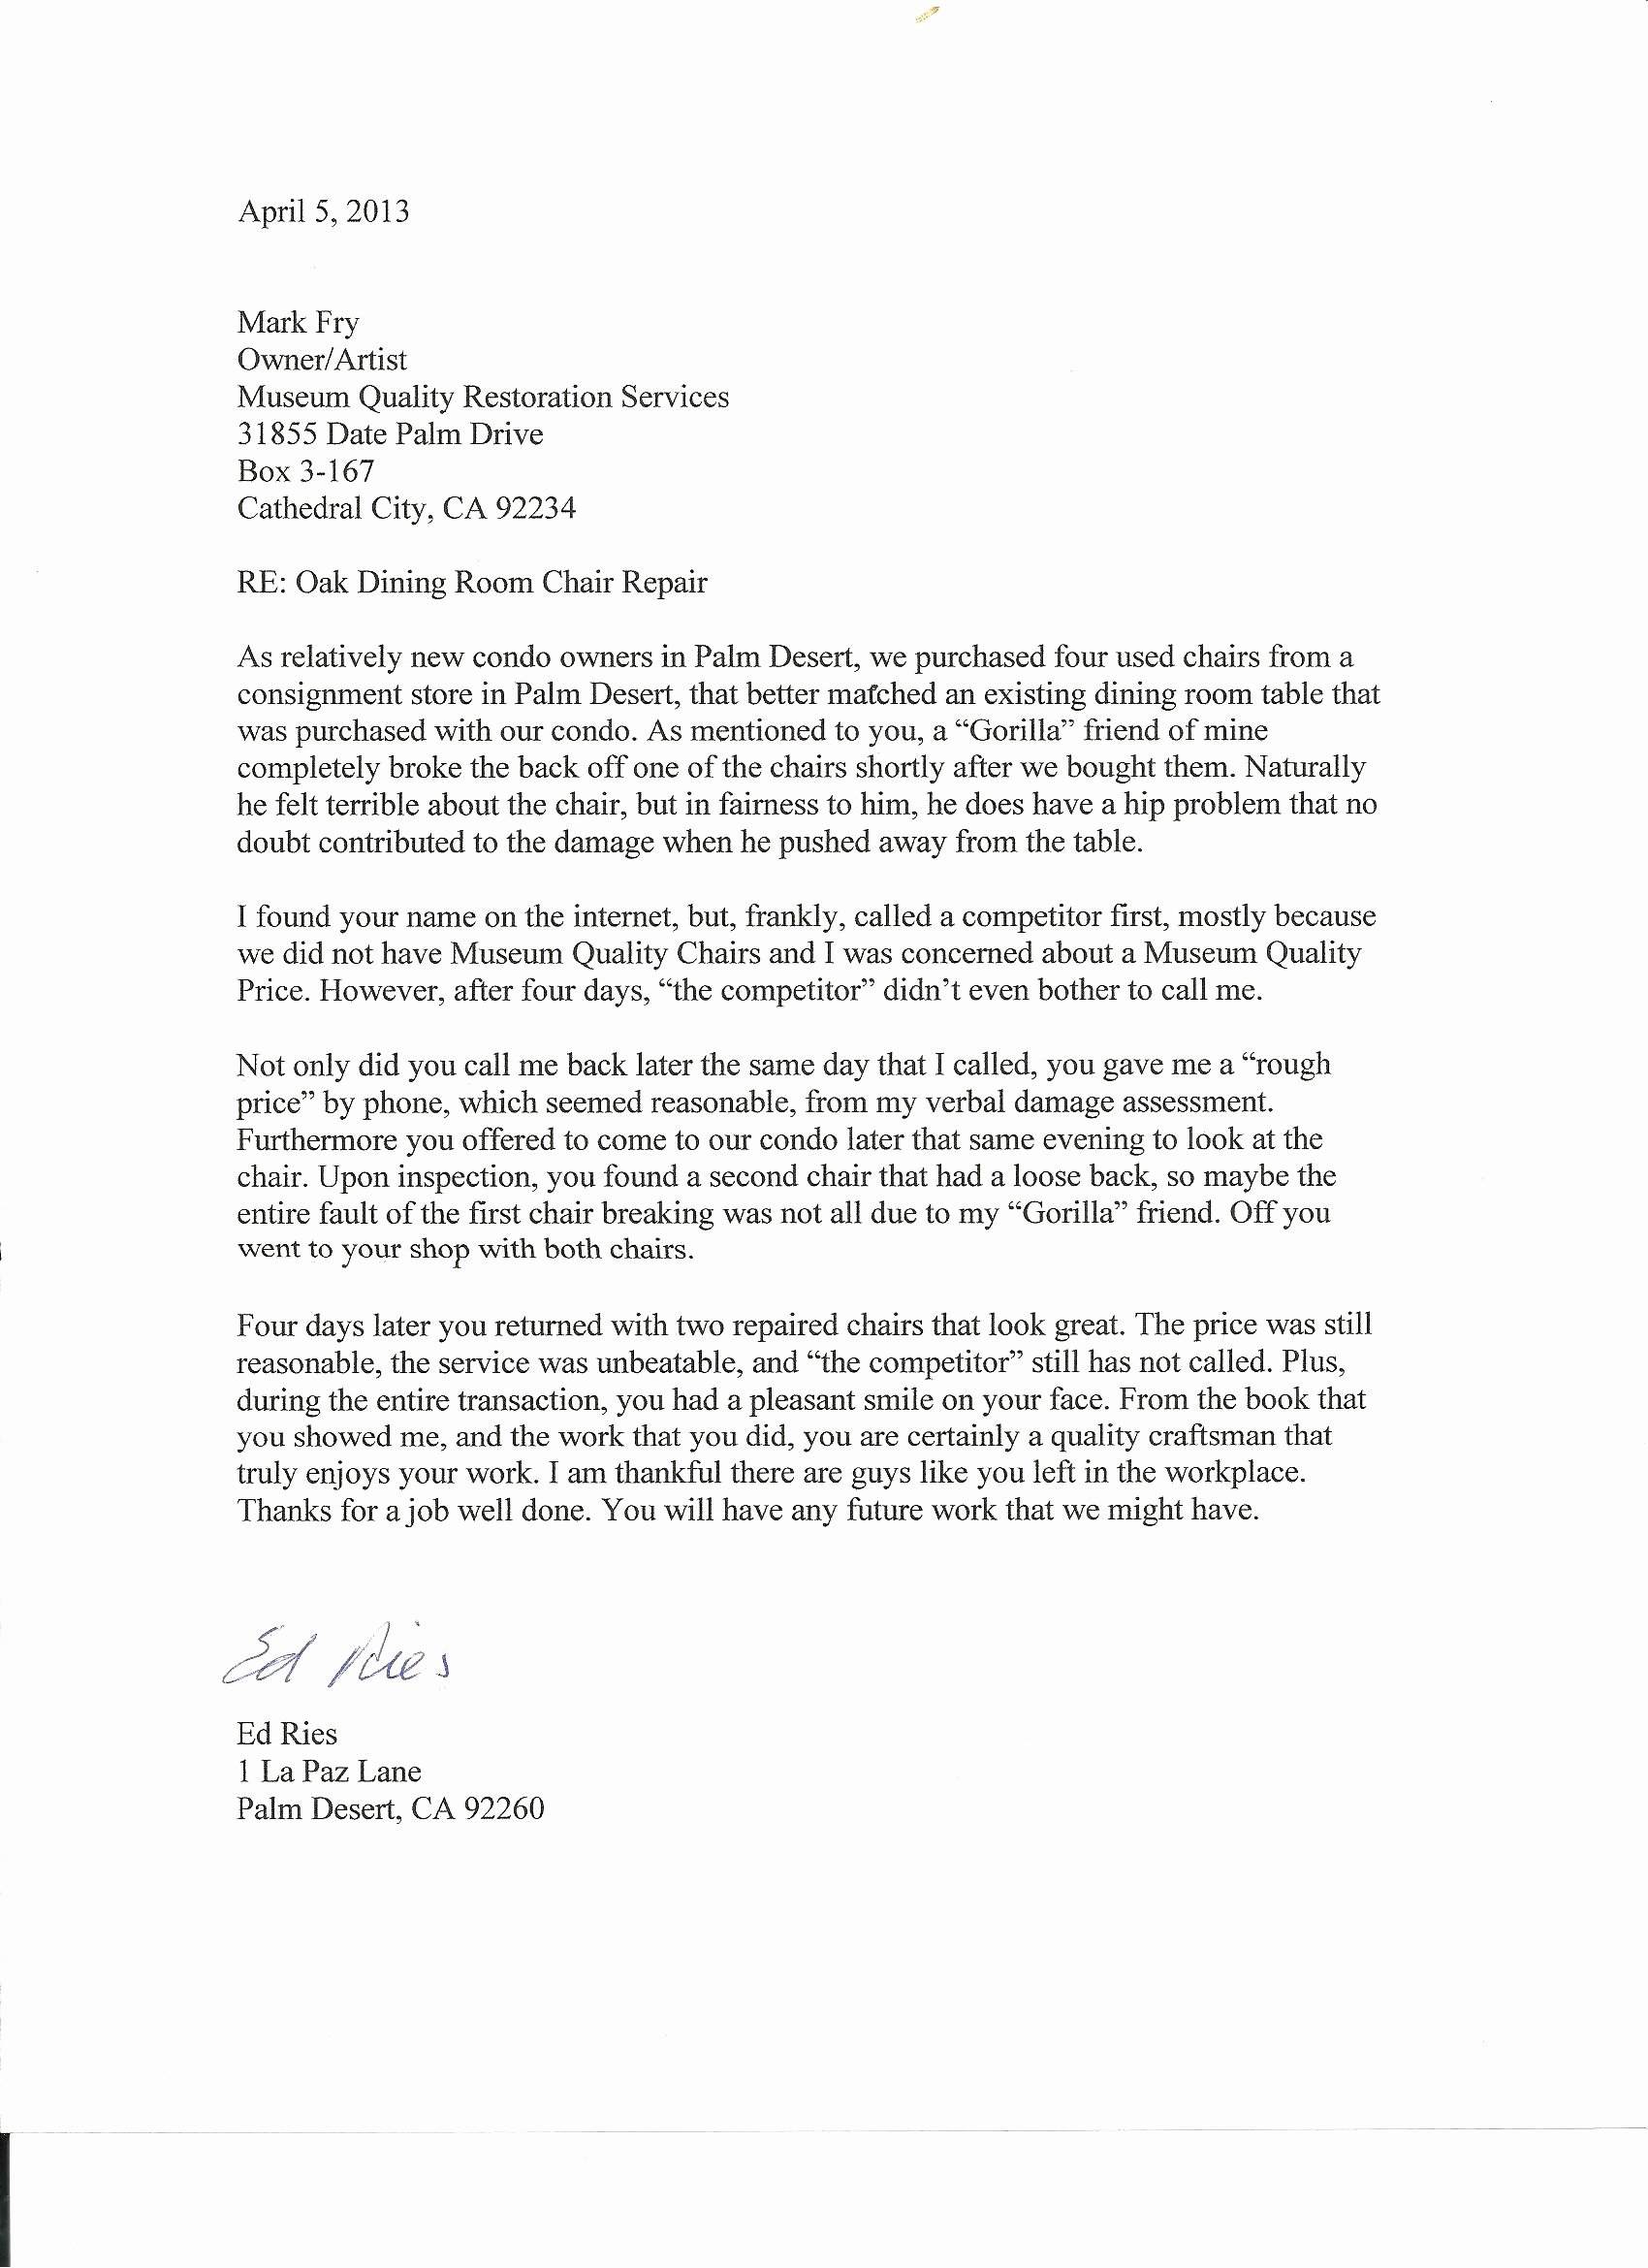 Usmc Letter Of Recommendation Awesome Testimonials